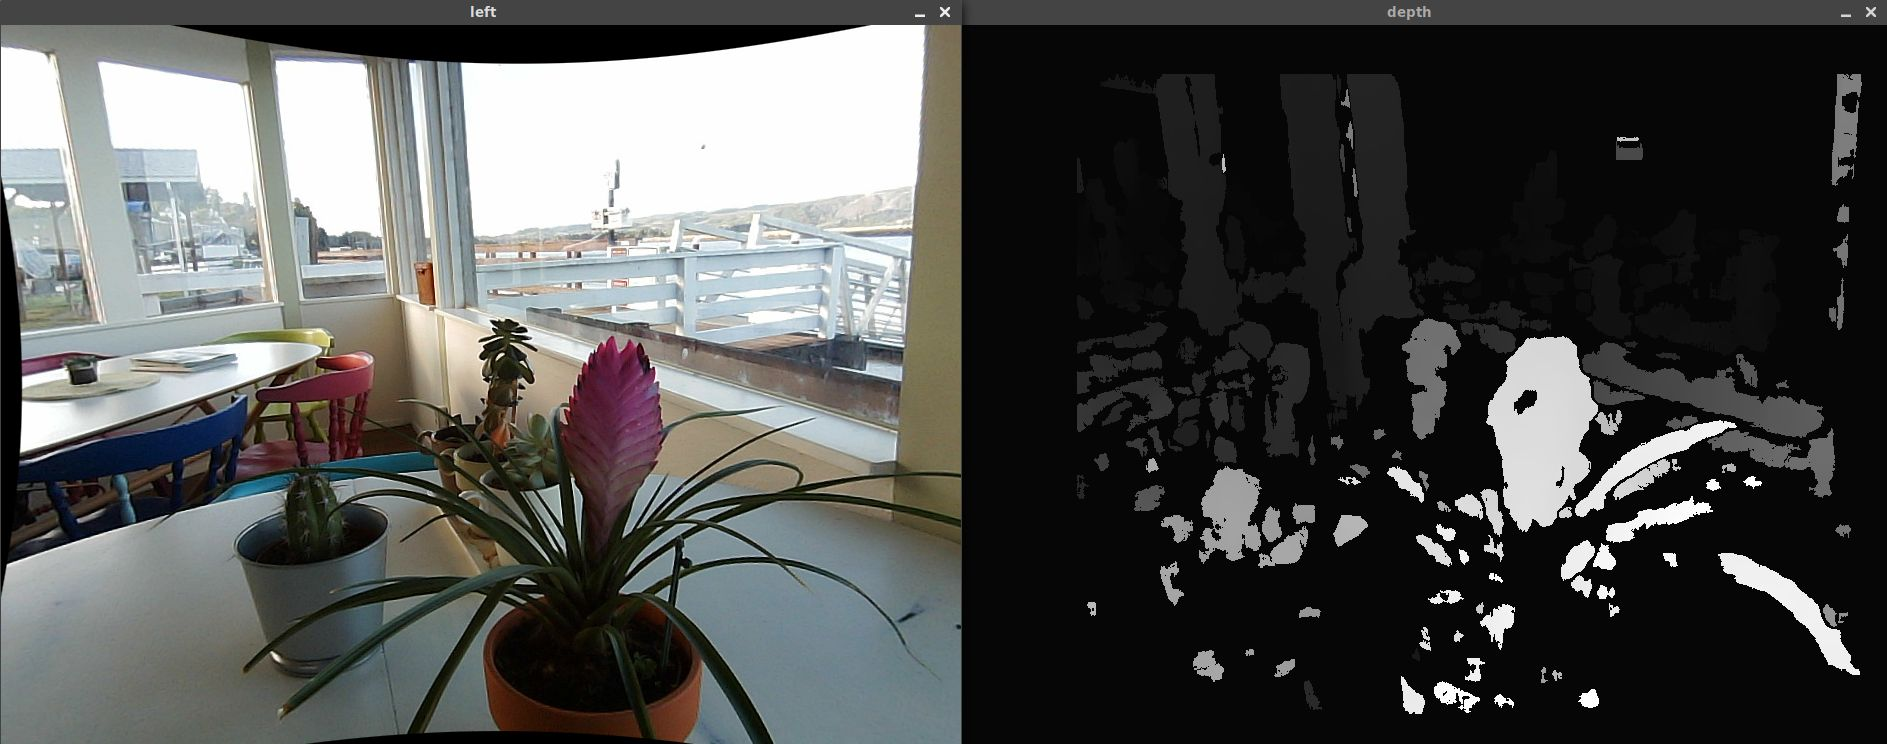 Calculating a depth map from a stereo camera with OpenCV | Albert Armea